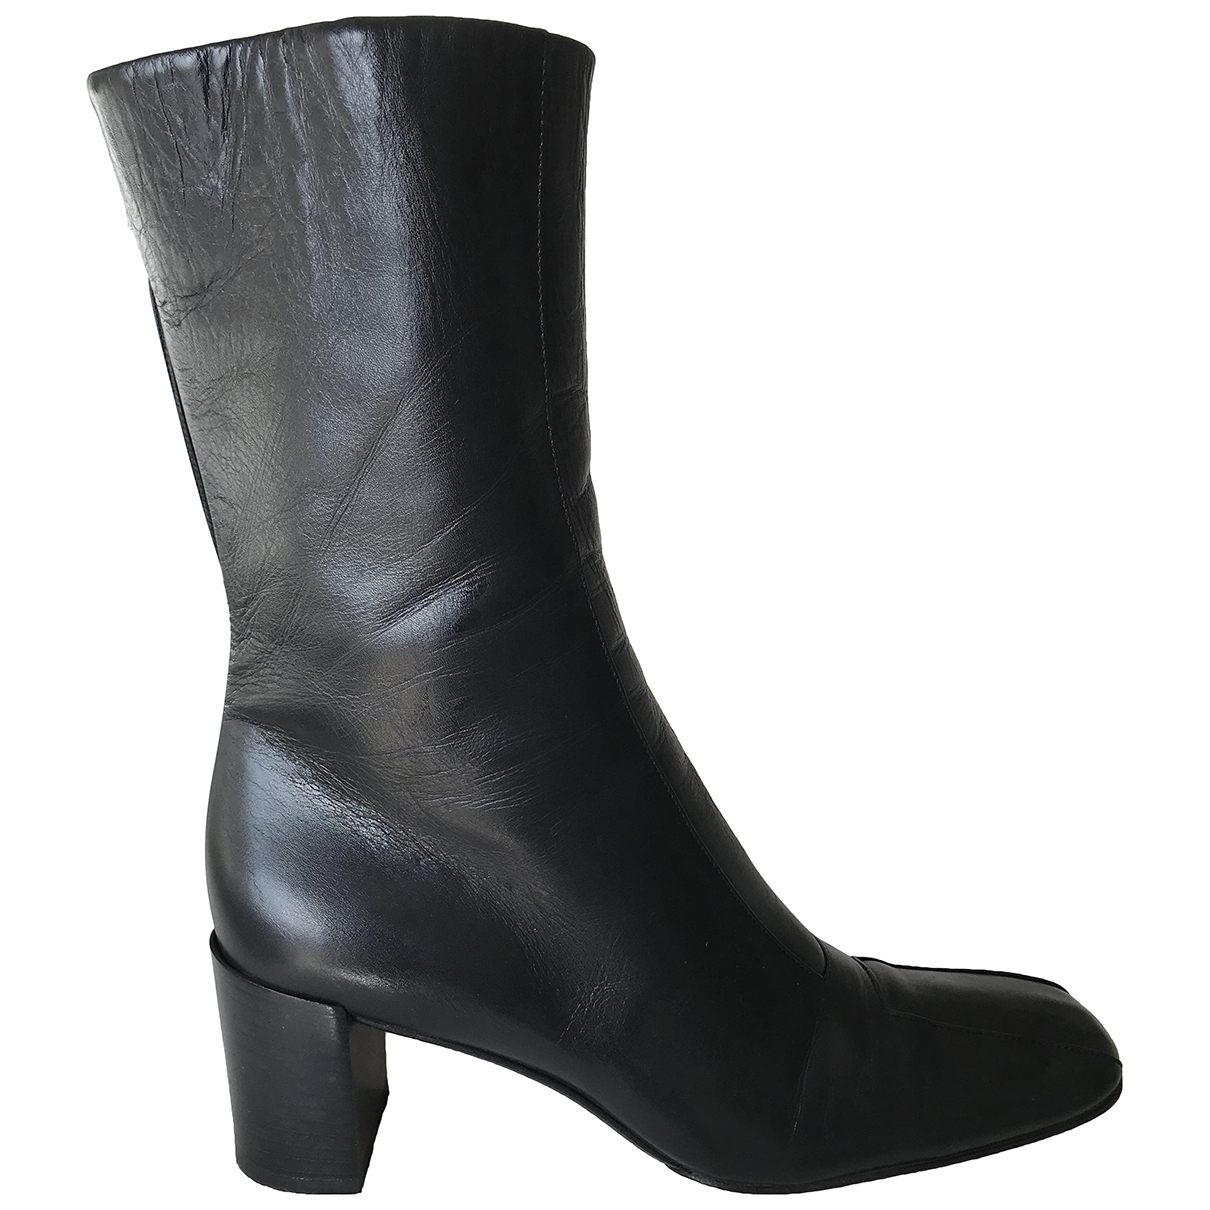 Bally N Black Leather Ankle boots for Women 37.5 EU